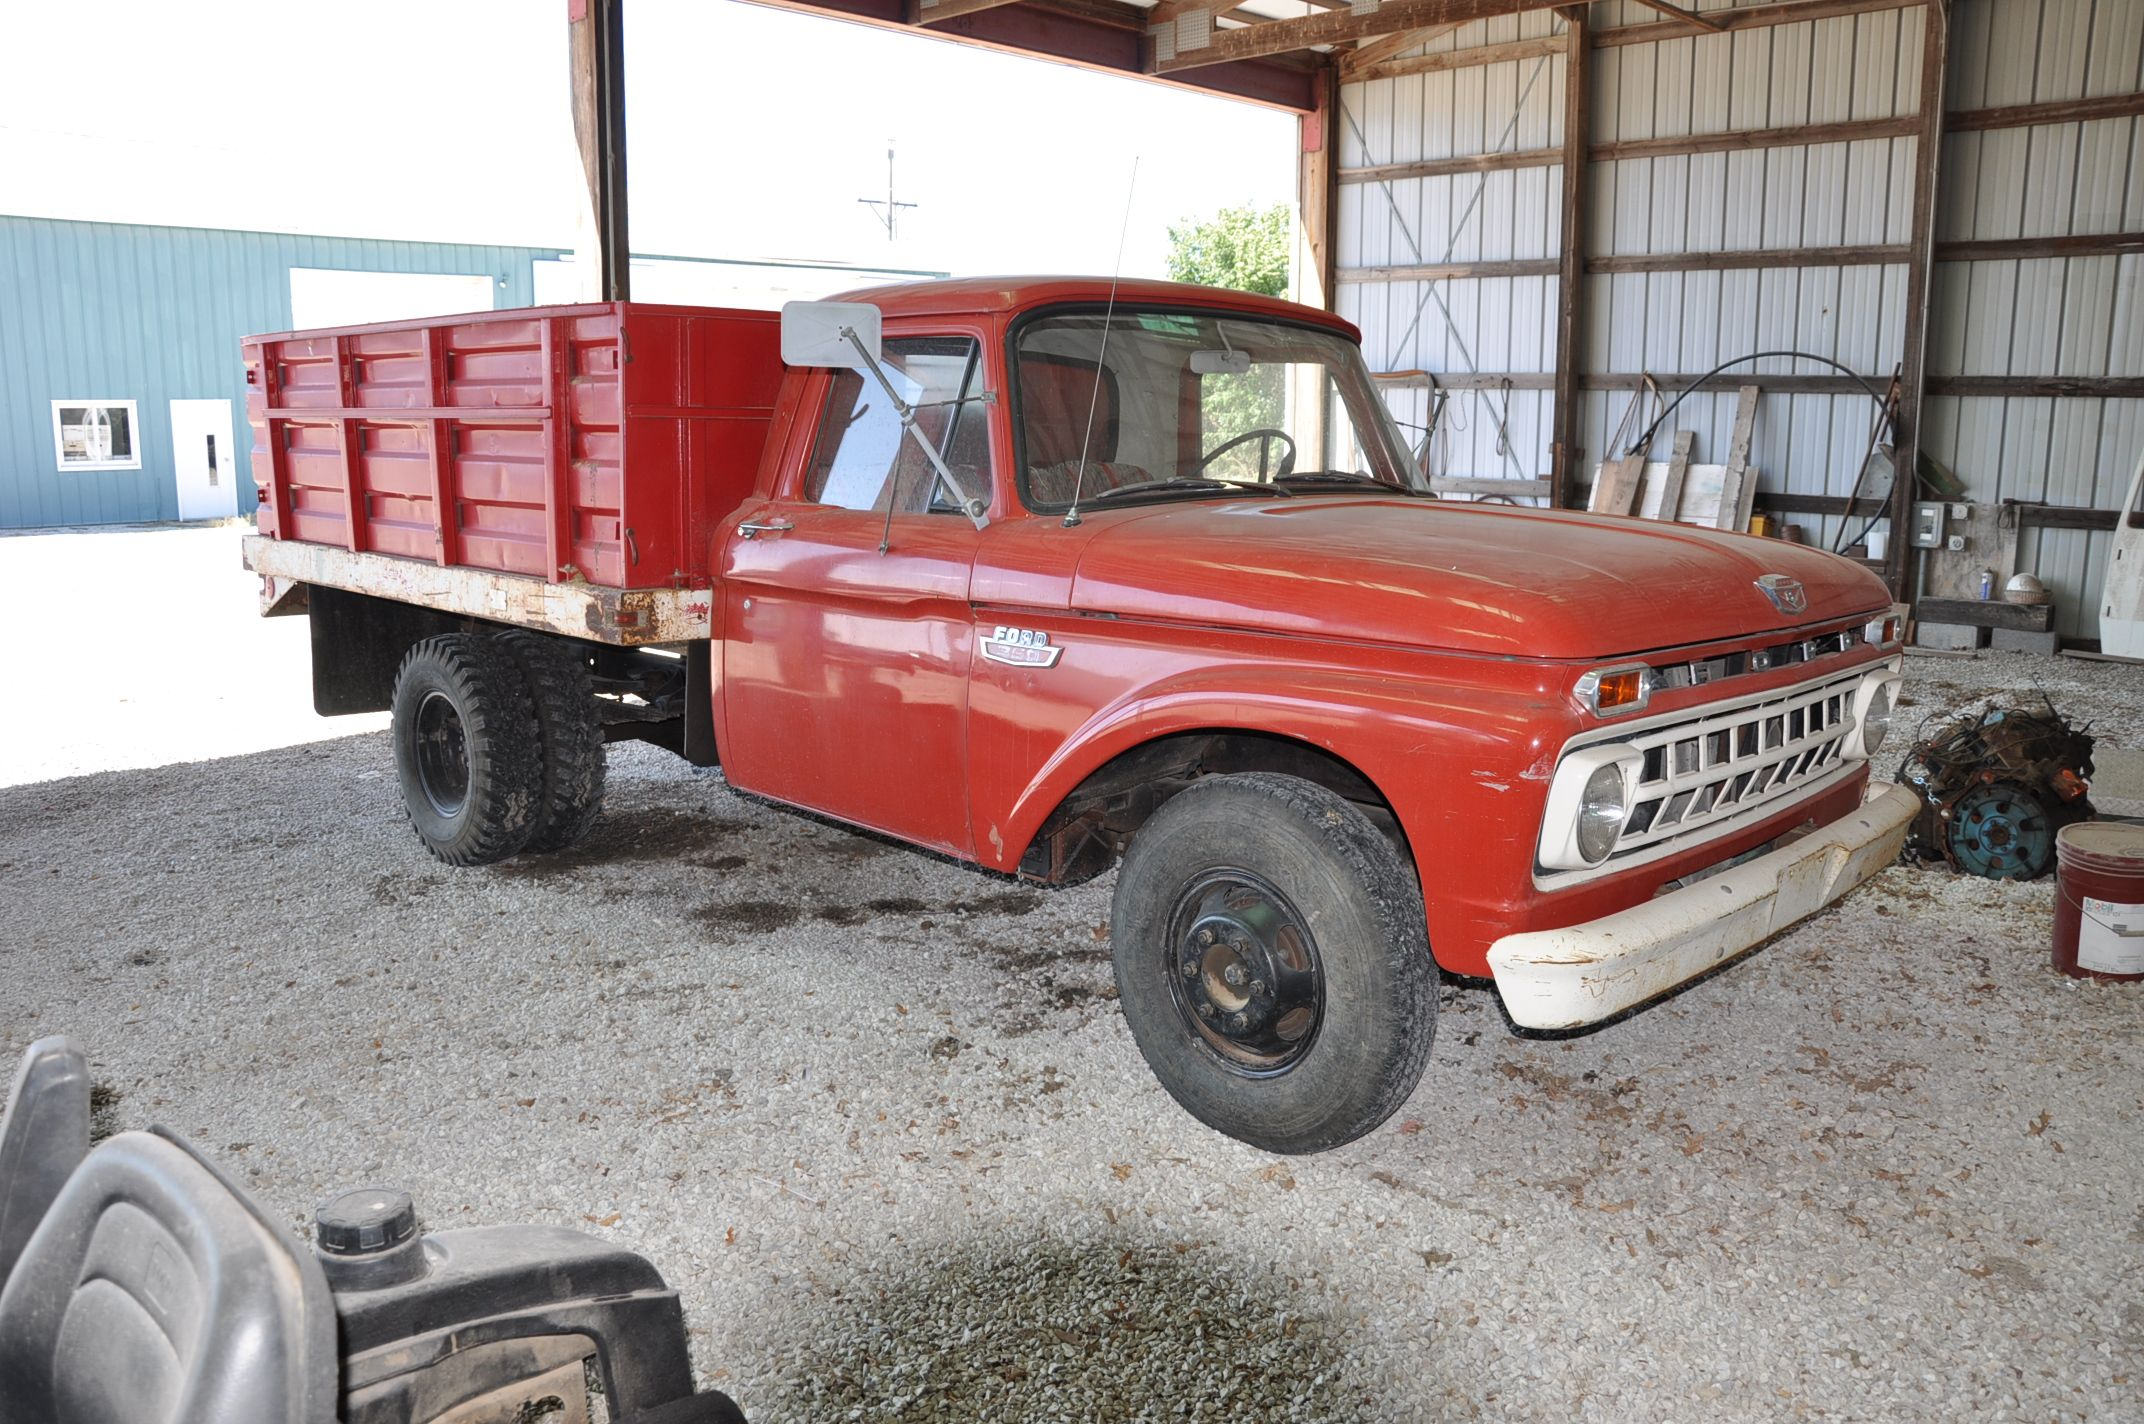 For sale 1964 Ford F350 Flatbed Truck 7995.00 at www